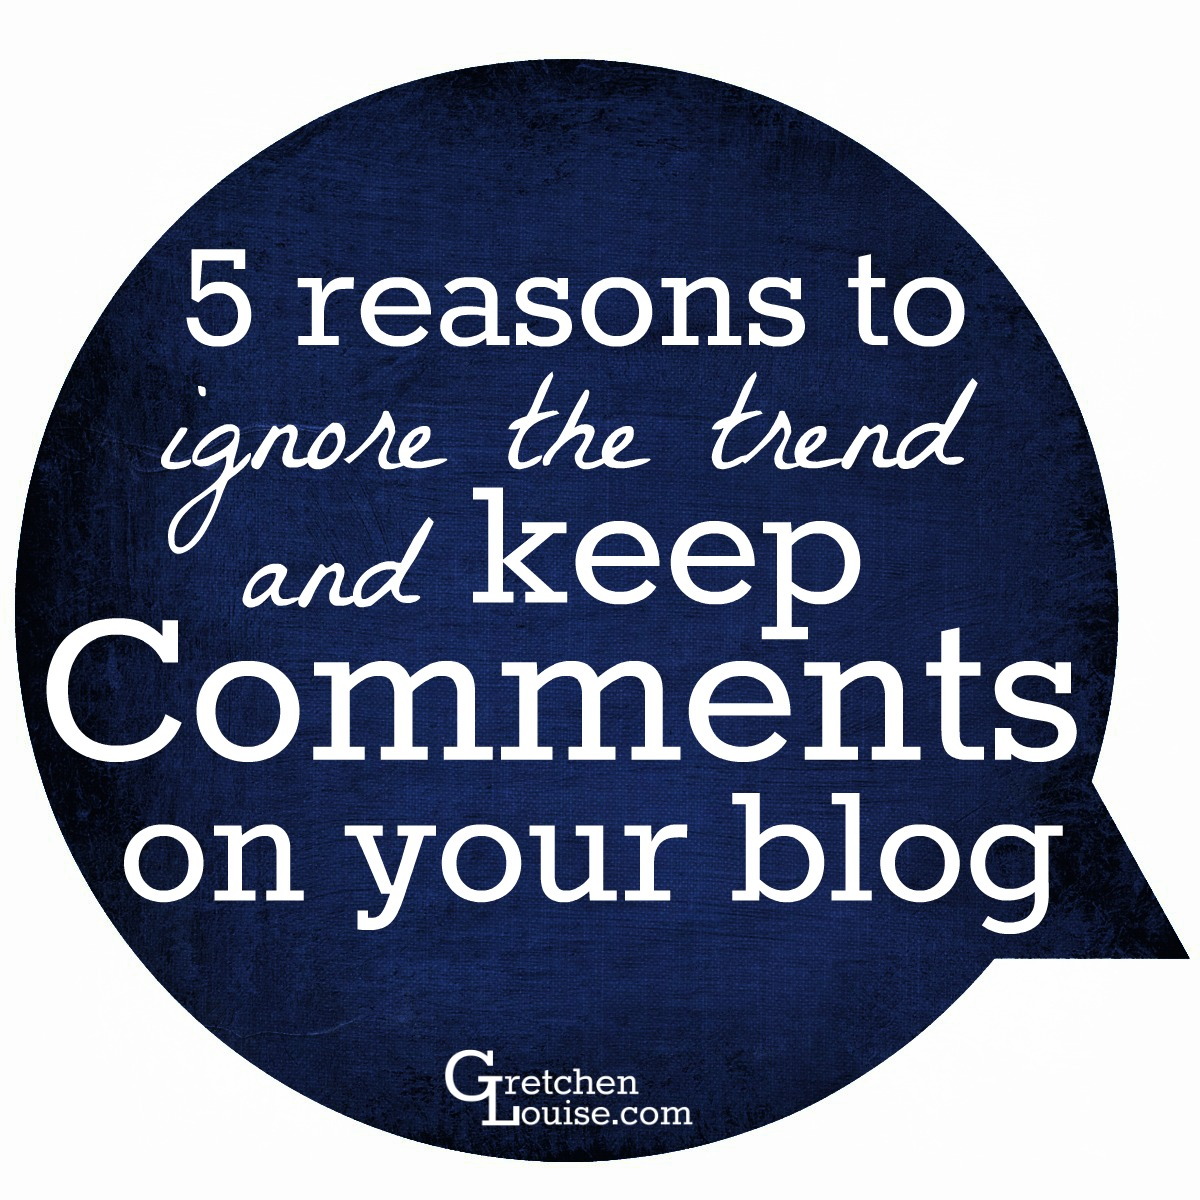 Although killing comments may be all the rage this season, here are 5 reasons you may want to not want to join the trend.